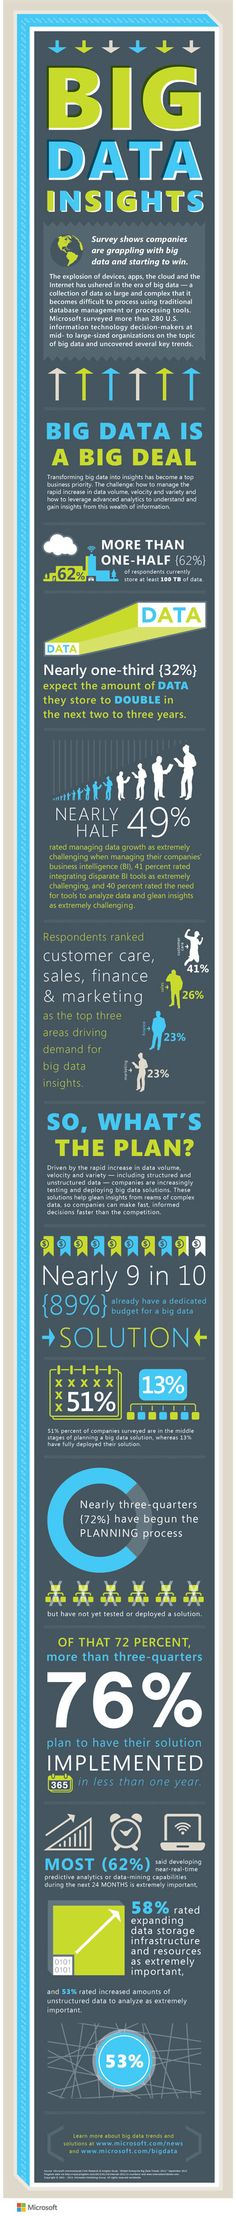 Infographic: Big Data Insights – Companies Are Attacking Big Data In A Big Way Marketing Digital, Marketing Data, Big Data, It Management, Microsoft, Marketing Technology, Entrepreneur, Startup, Business Intelligence